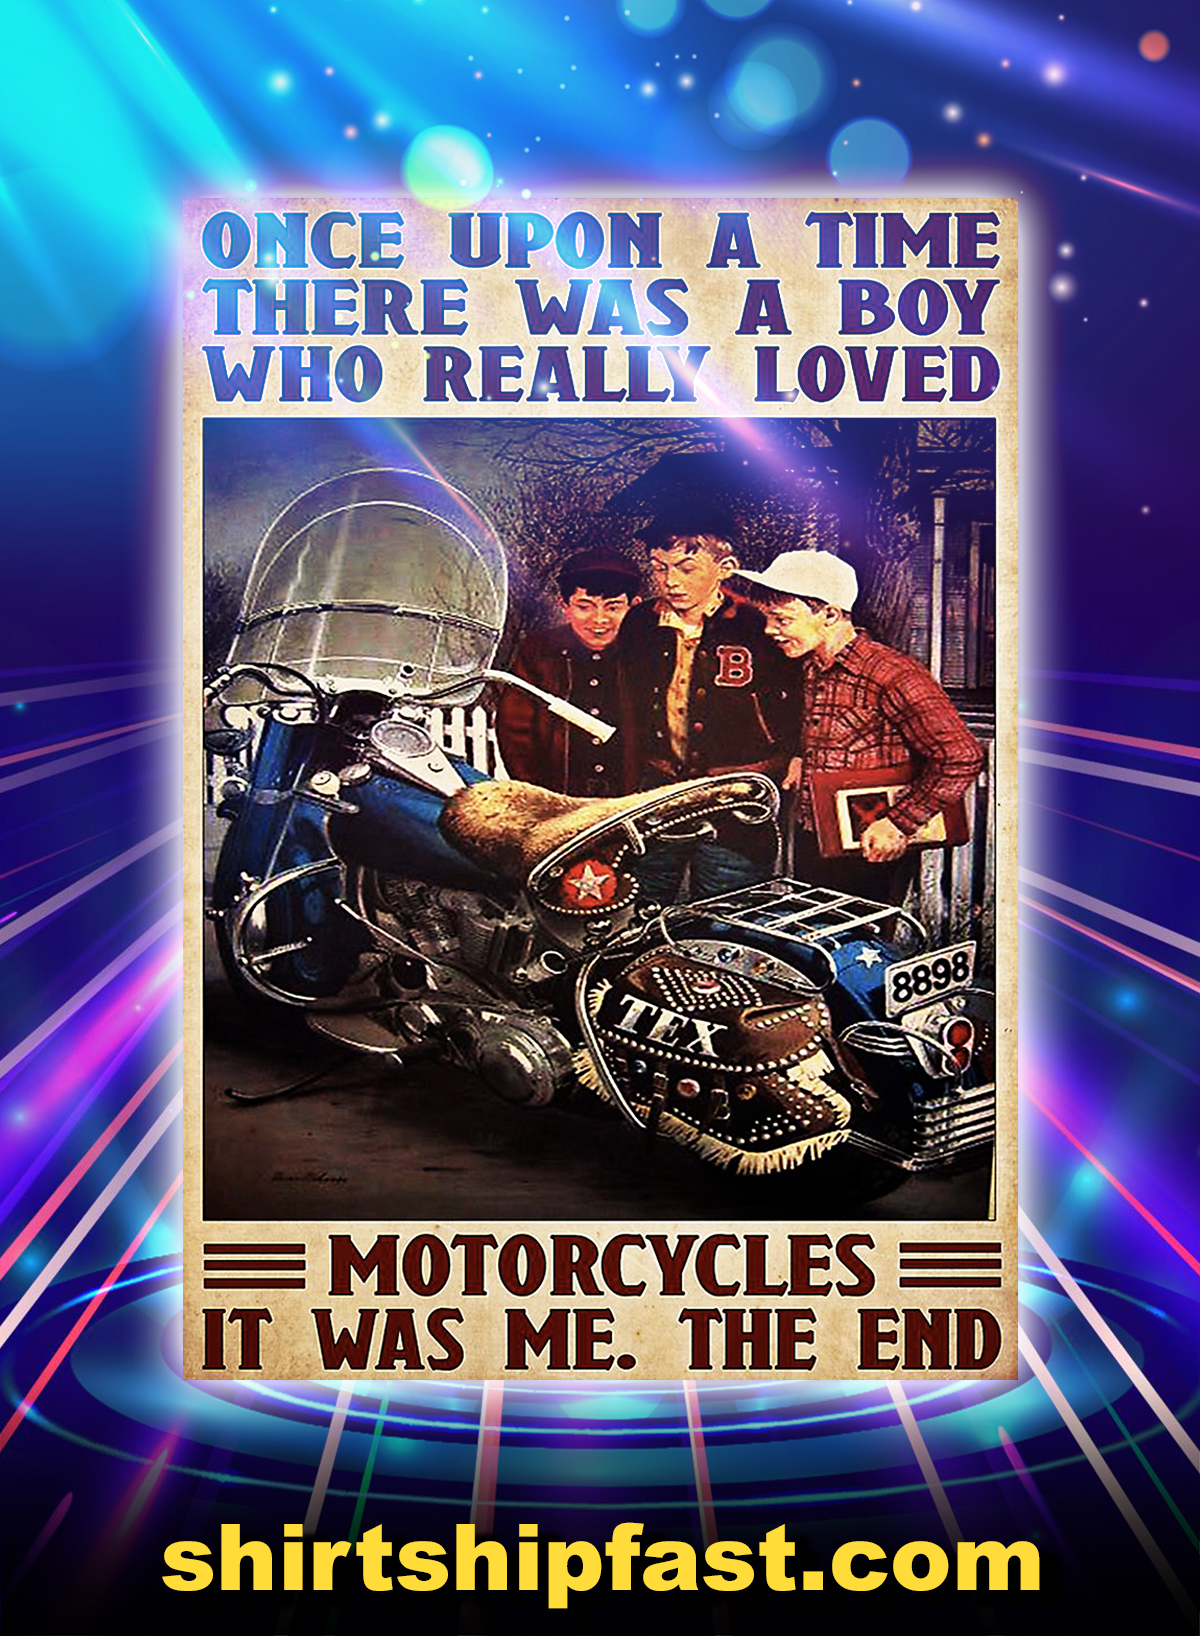 There was a boy who really loved motorcycles poster - A4